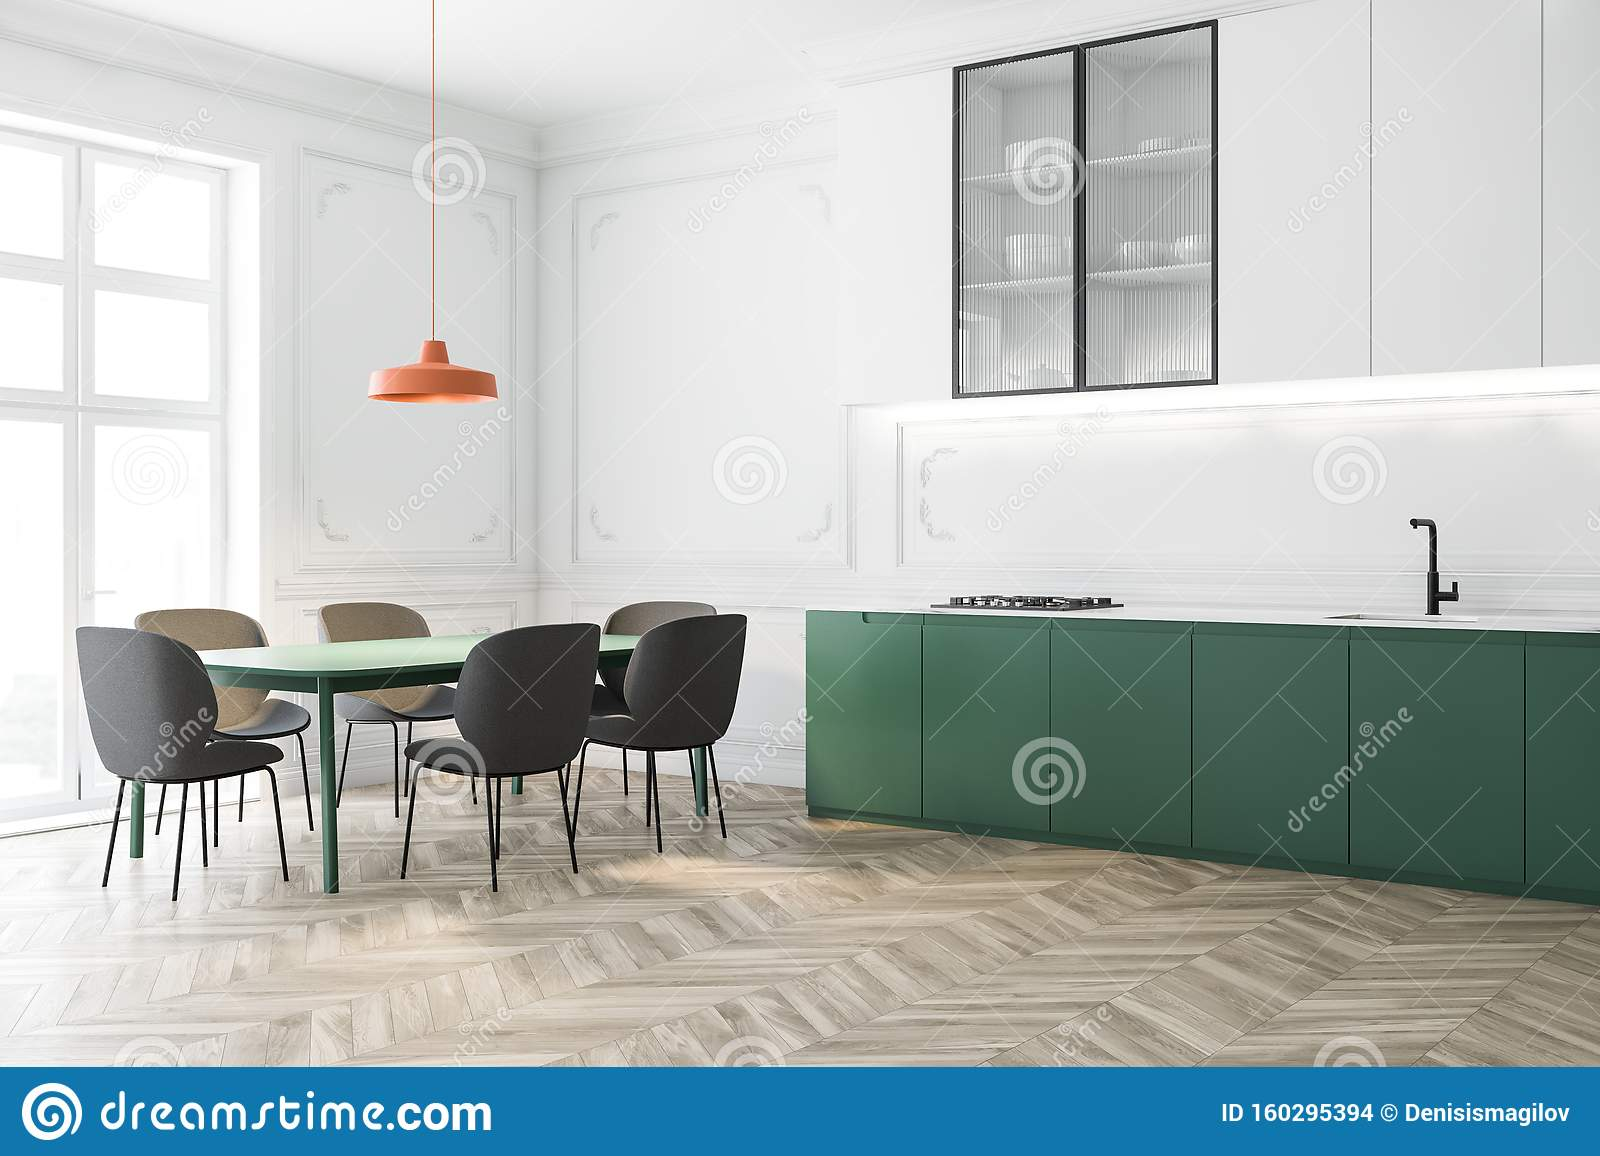 White And Green Kitchen Corner With Long Table Stock Illustration Illustration Of Cooking Faucet 160295394